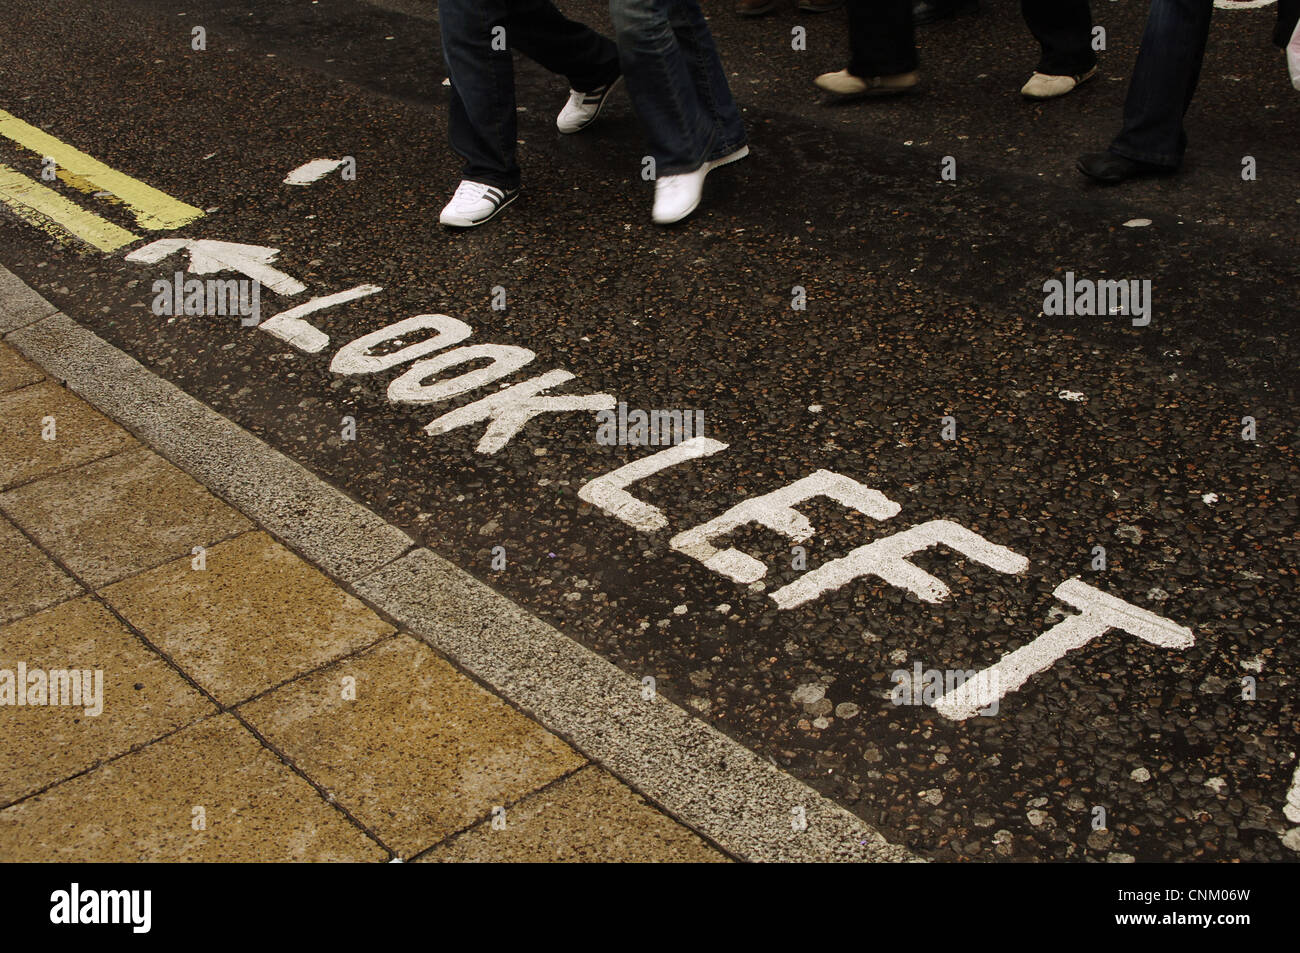 United Kingdom. London. Warning on the road of the obligation to look left before crossing the street. West End. - Stock Image